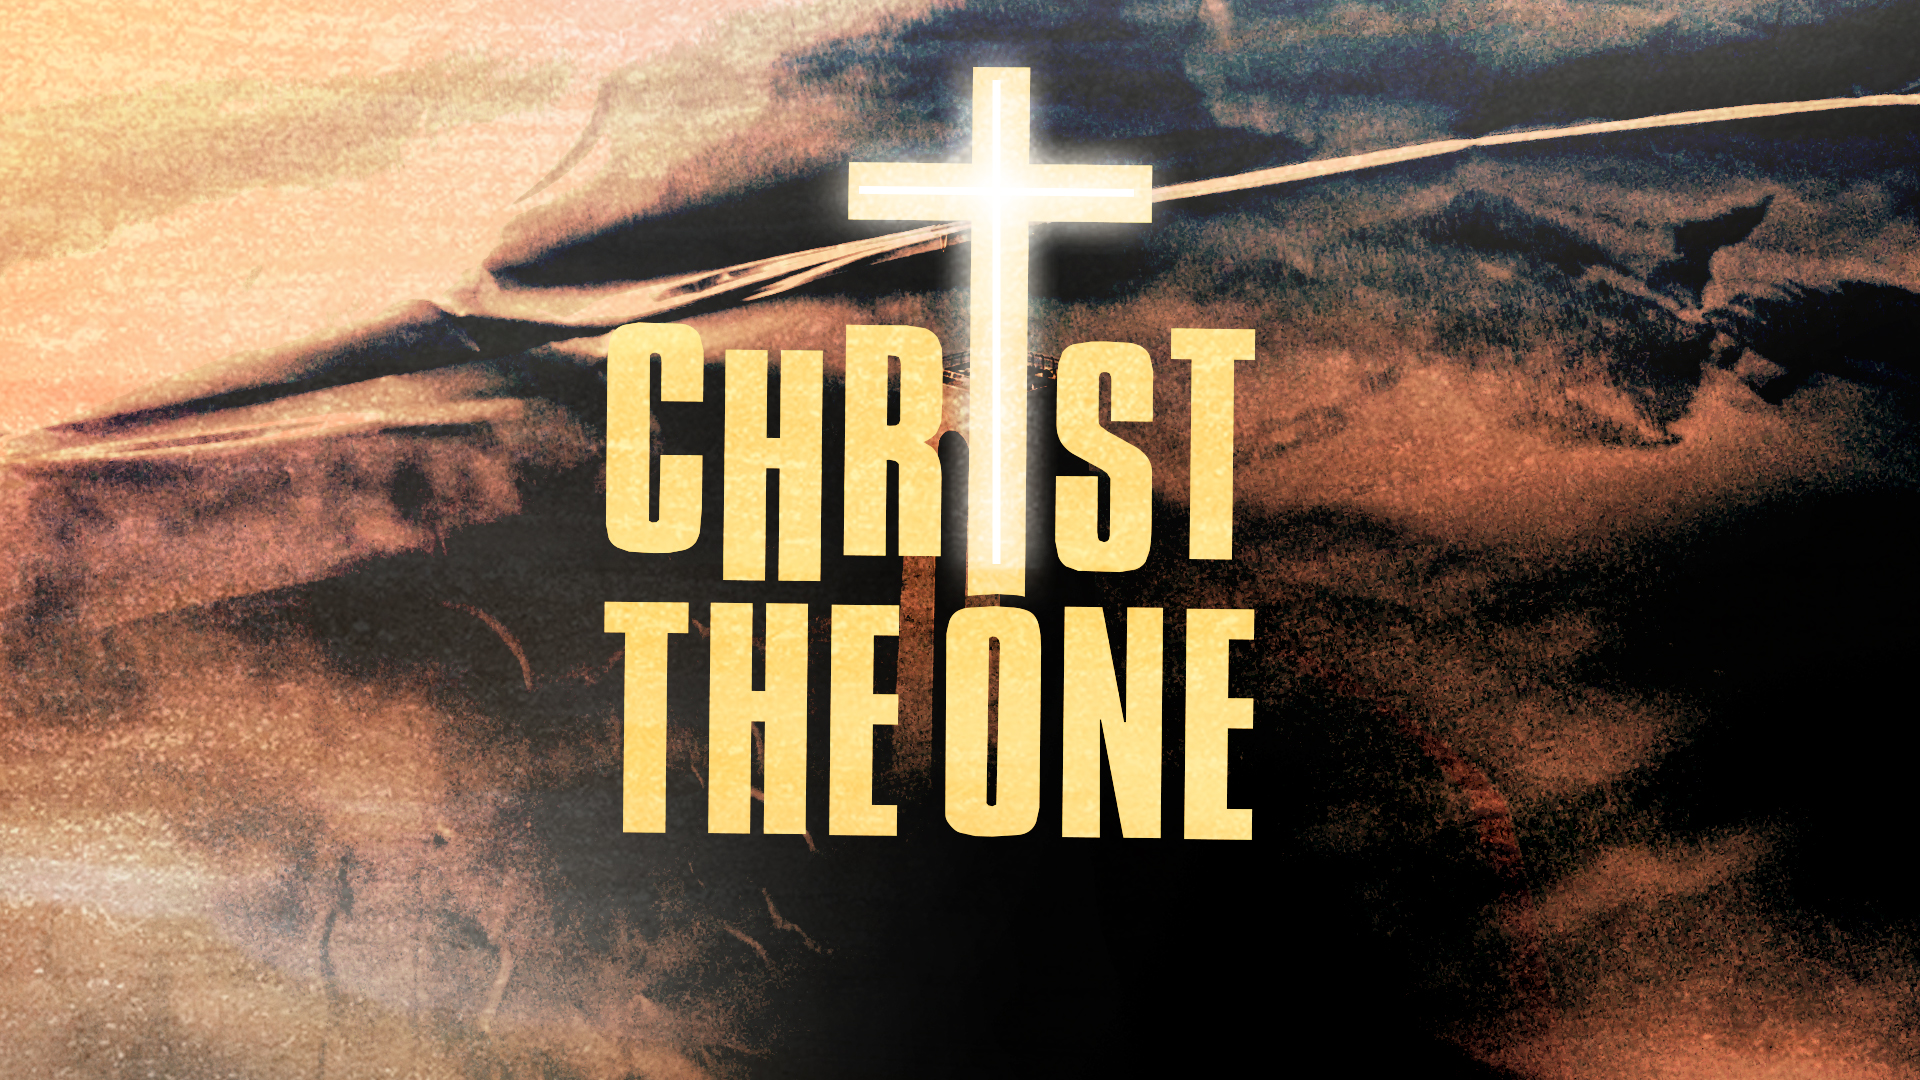 Christ The One